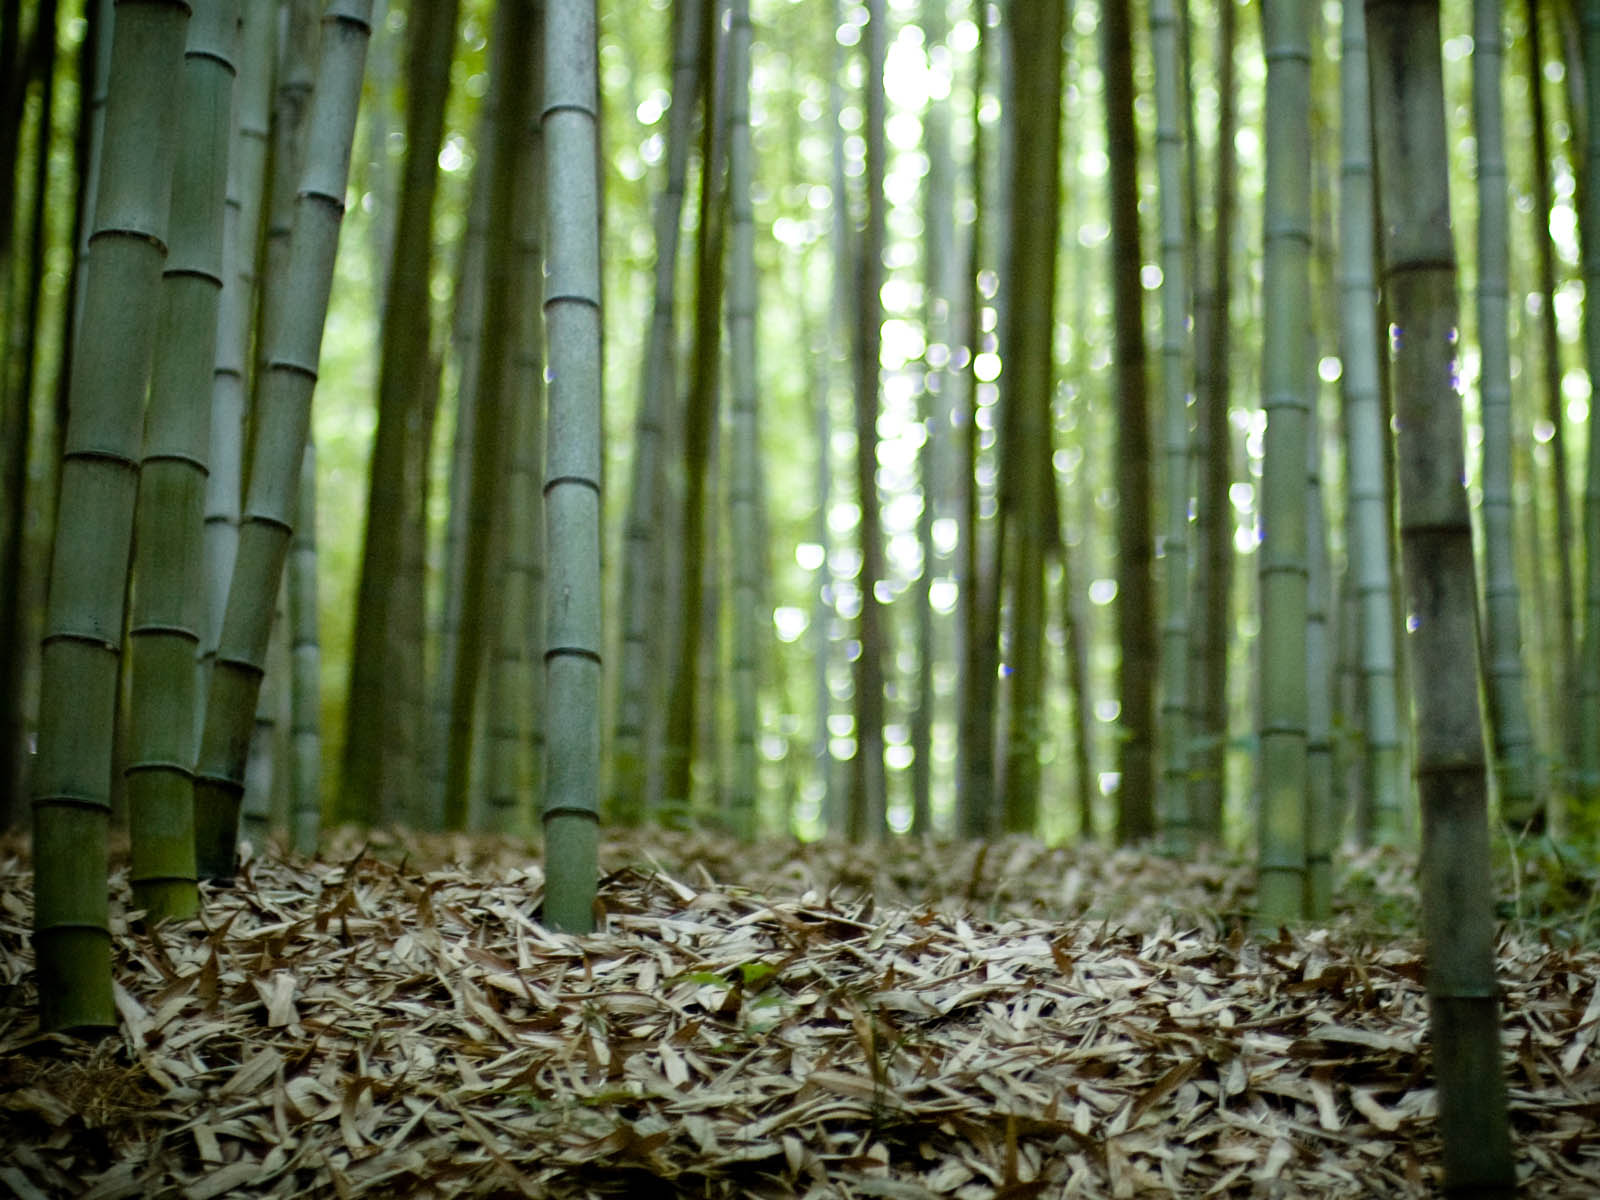 bamboo wallpaper by doantrangnguyen - photo #11